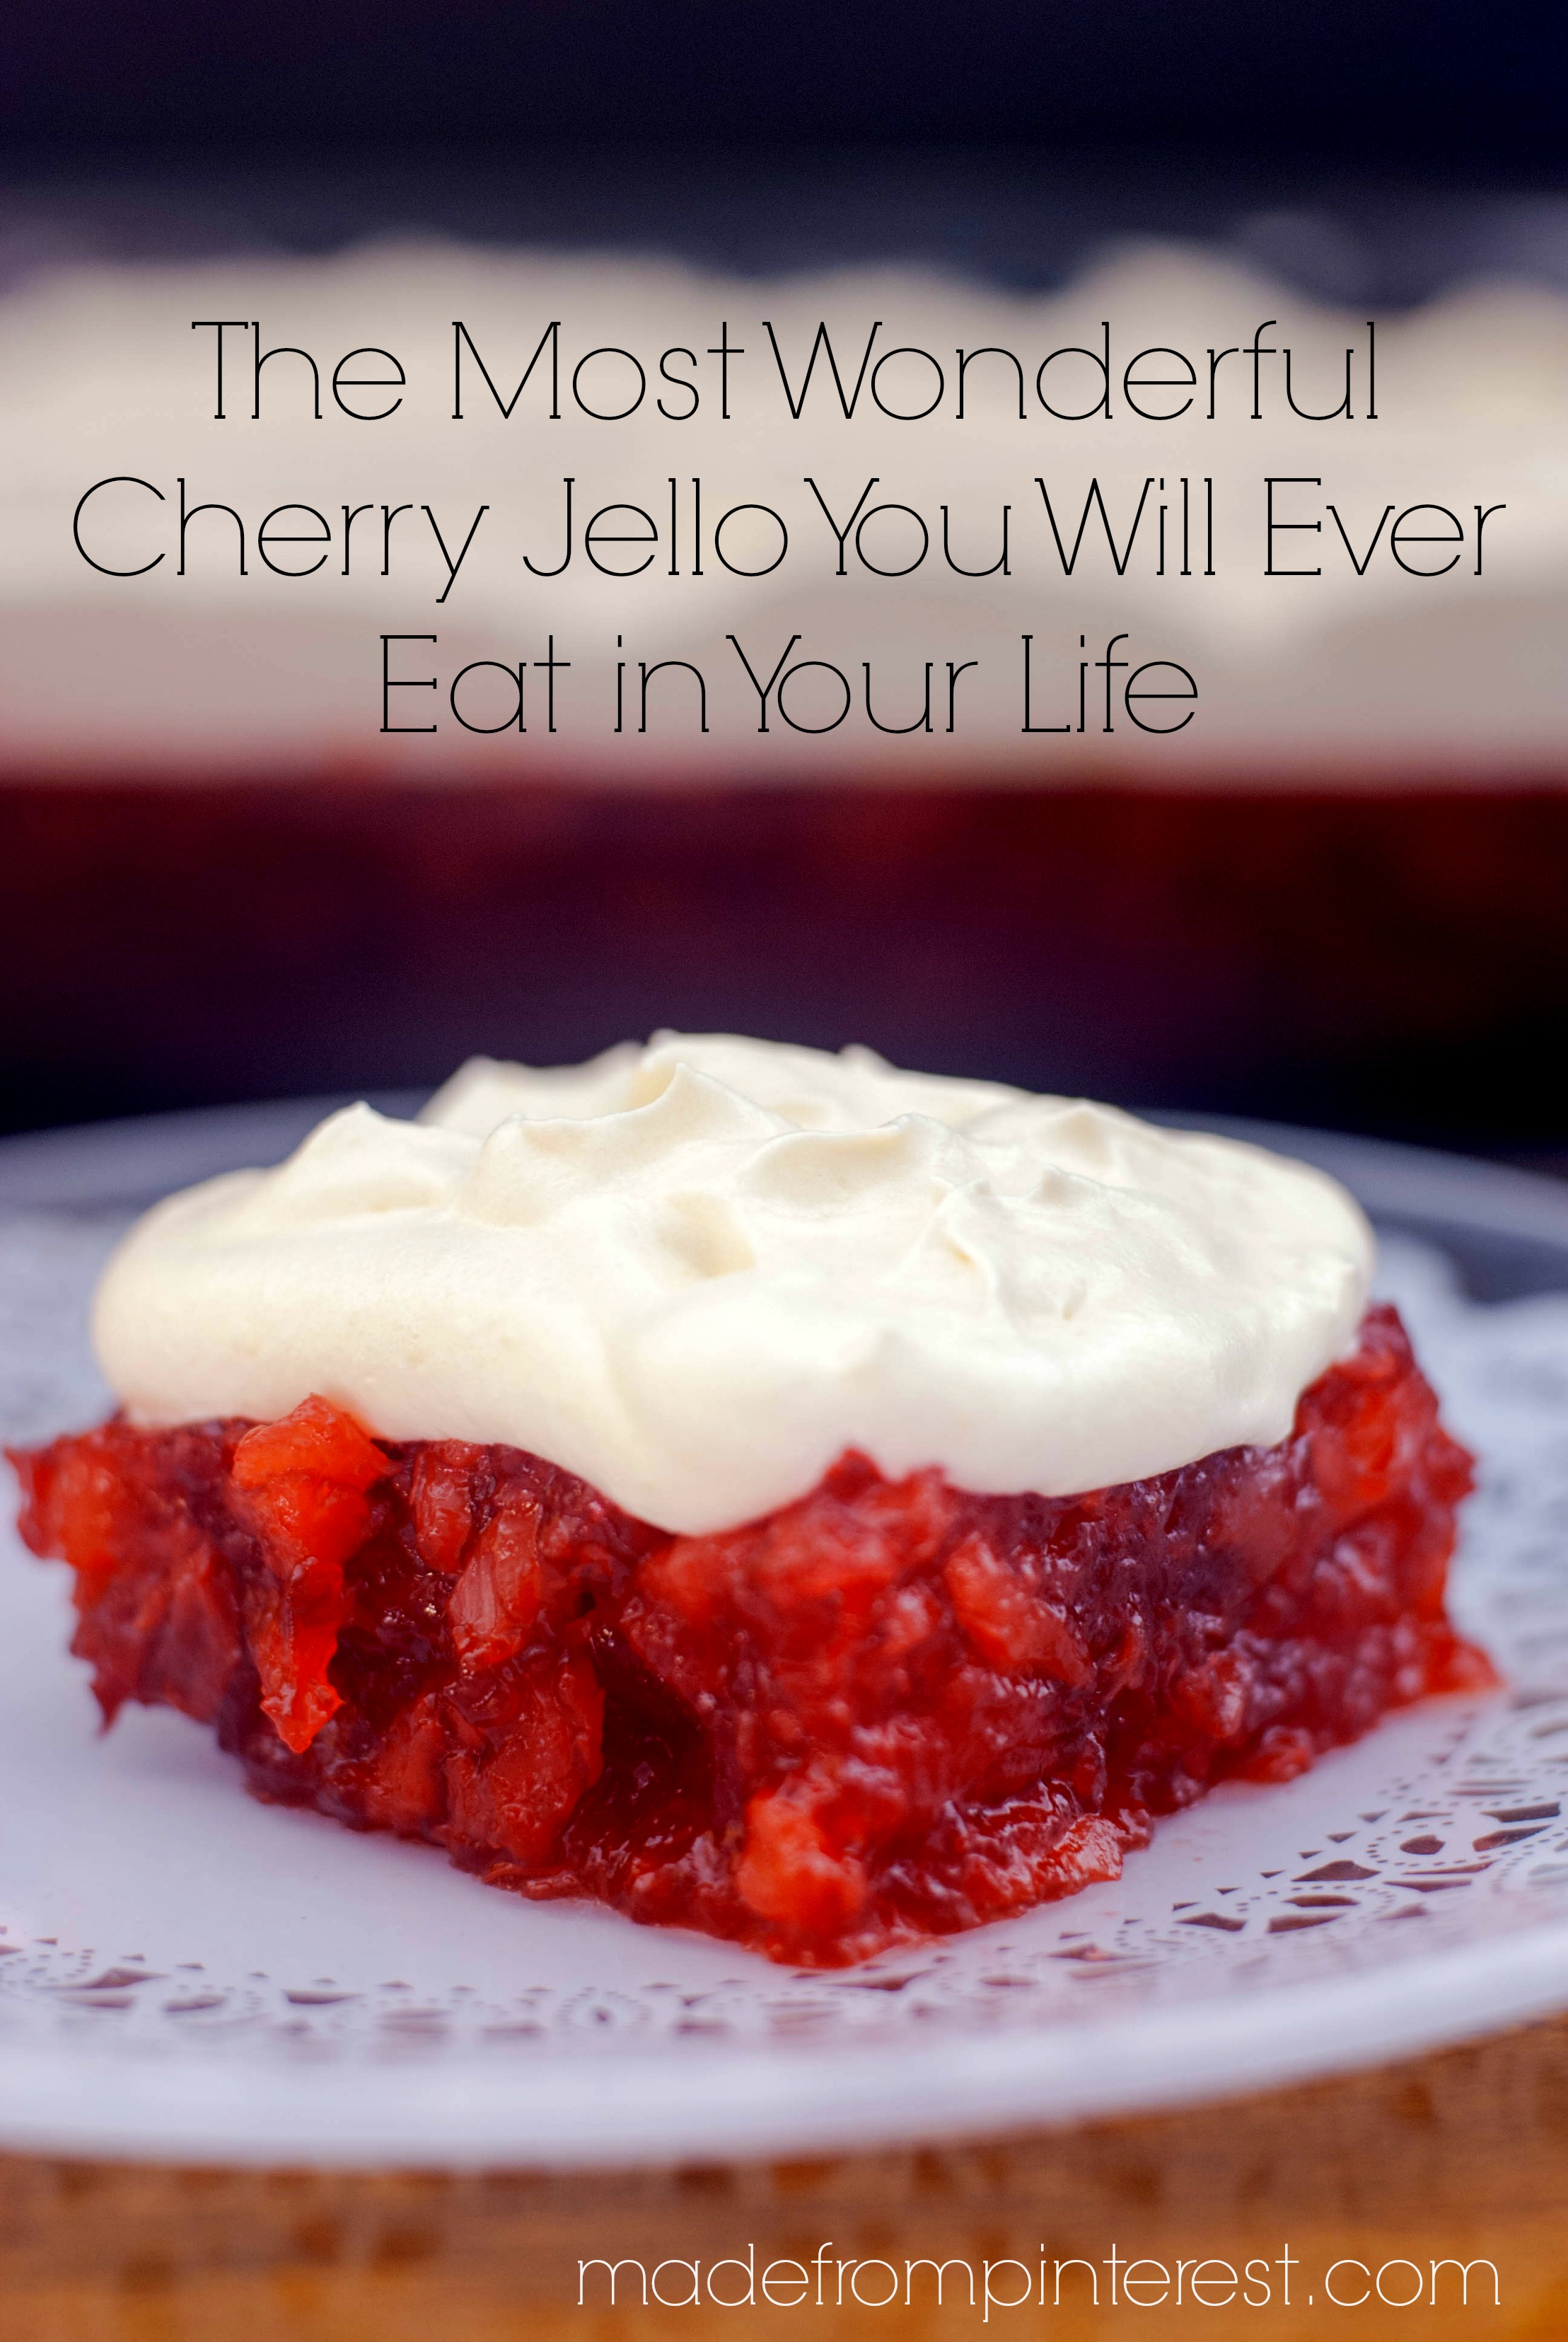 Christmas Jello Recipes.The Most Wonderful Cherry Jello You Will Ever Eat In Your Life